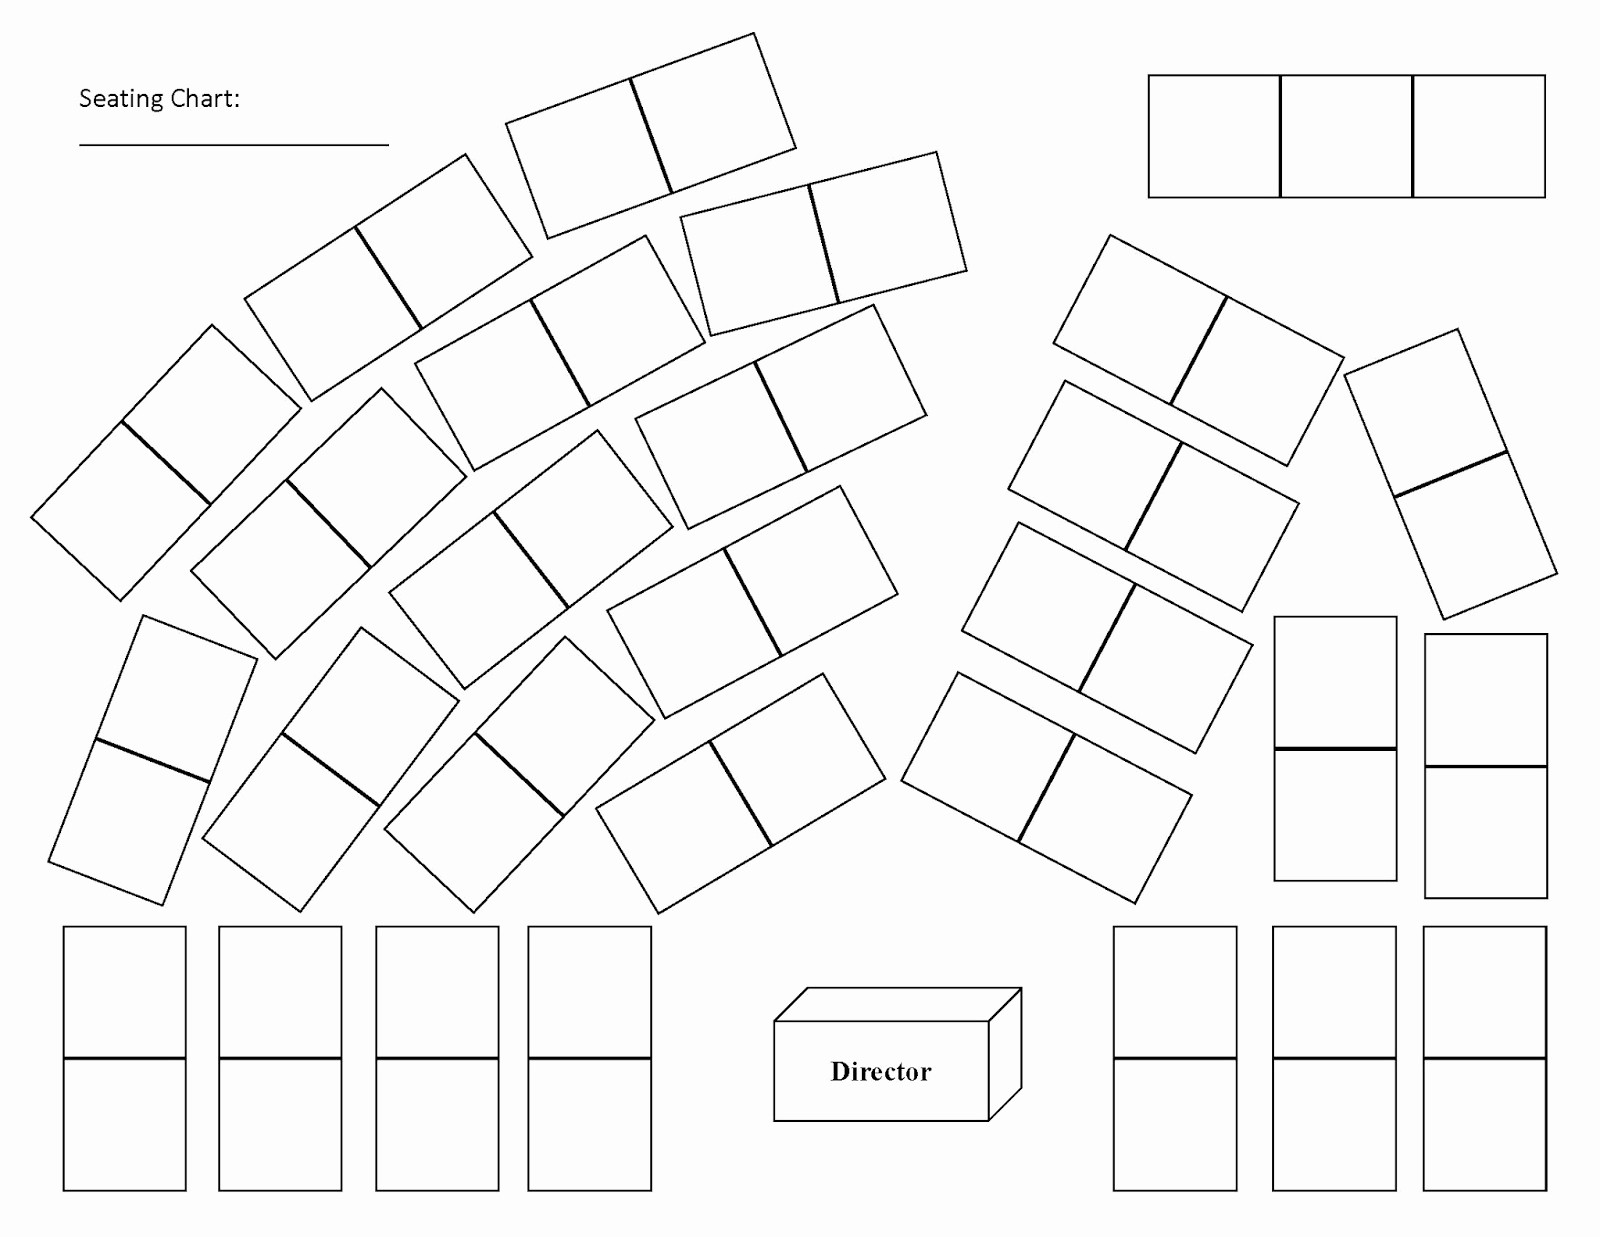 Make Seating Chart Online Free Awesome Free Classroom Seating Chart Maker Portablegasgrillweber